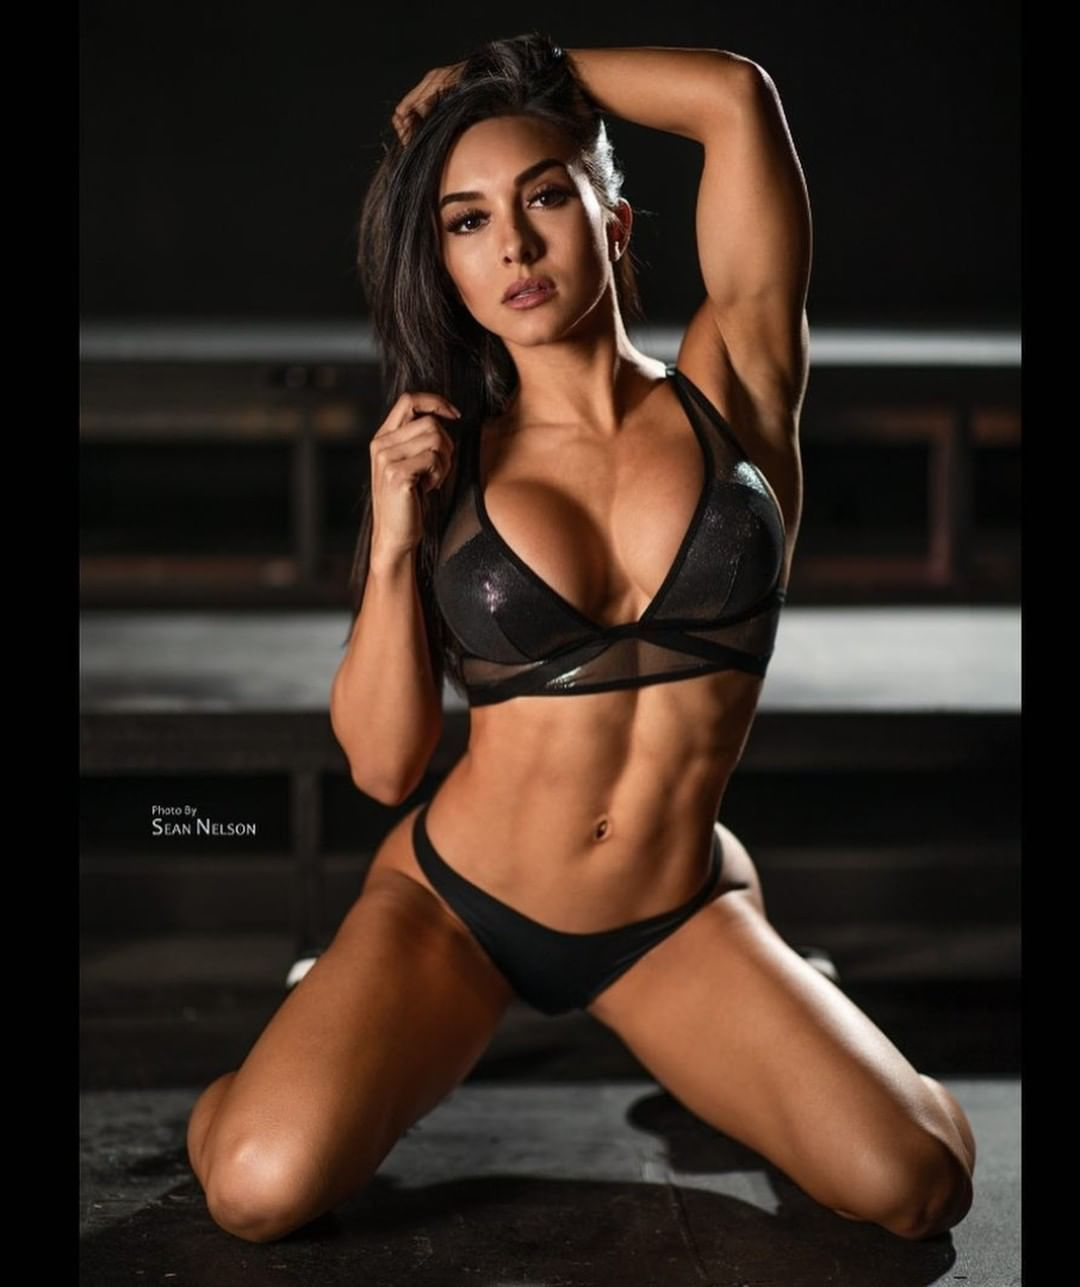 126d60981 My  personal  busty  brunette  fitness  hottie  crush - this  babe is   stacked and  sexy  AF -  prime  time  fantasy  material  anytime !!